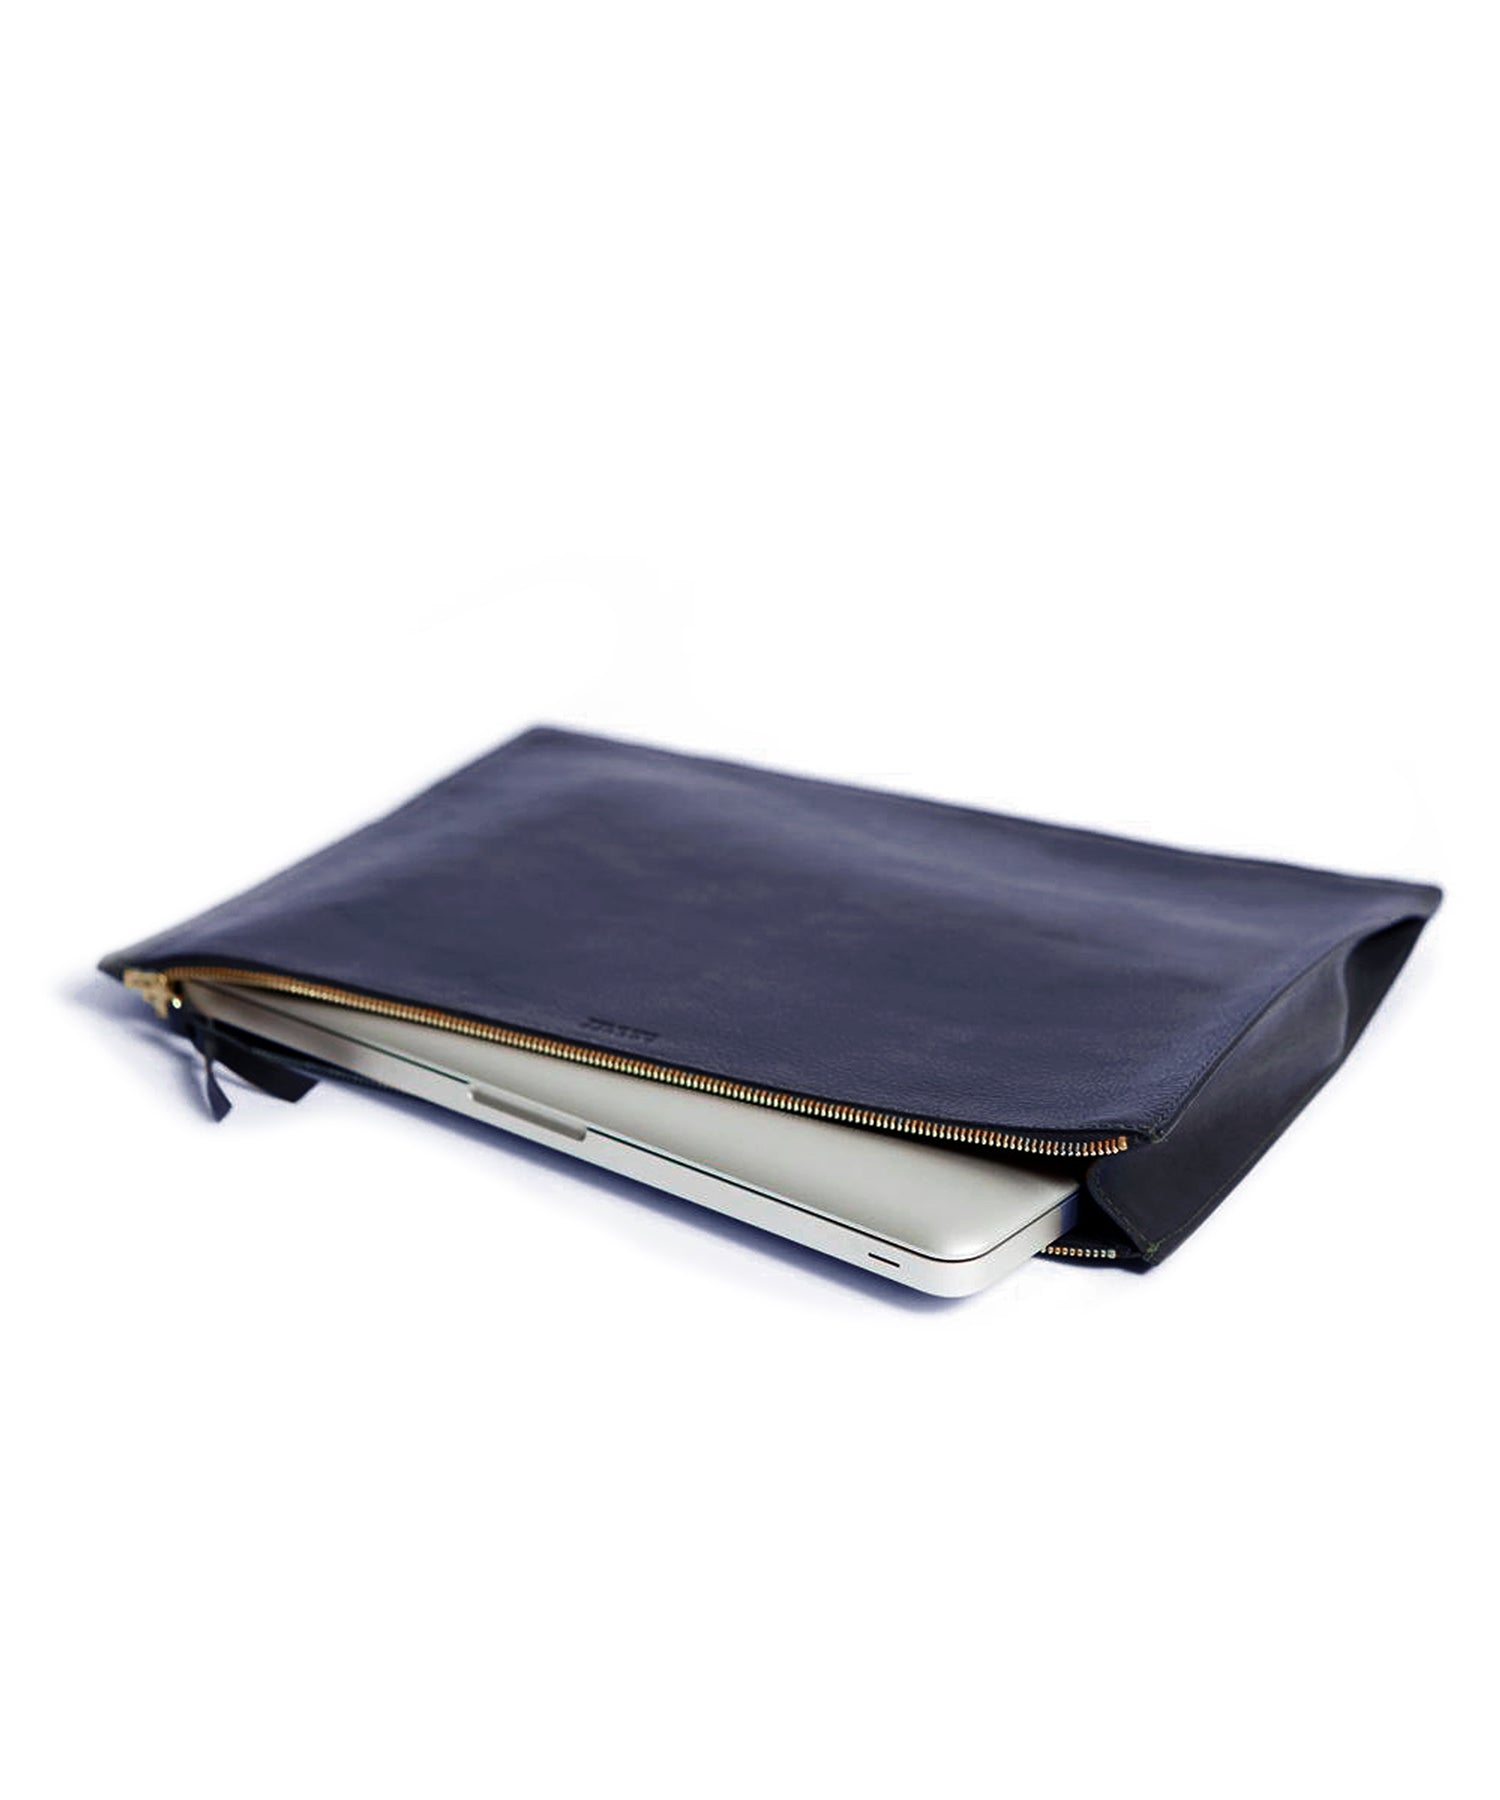 Lotuff Zipper Document Pouch in Indigo